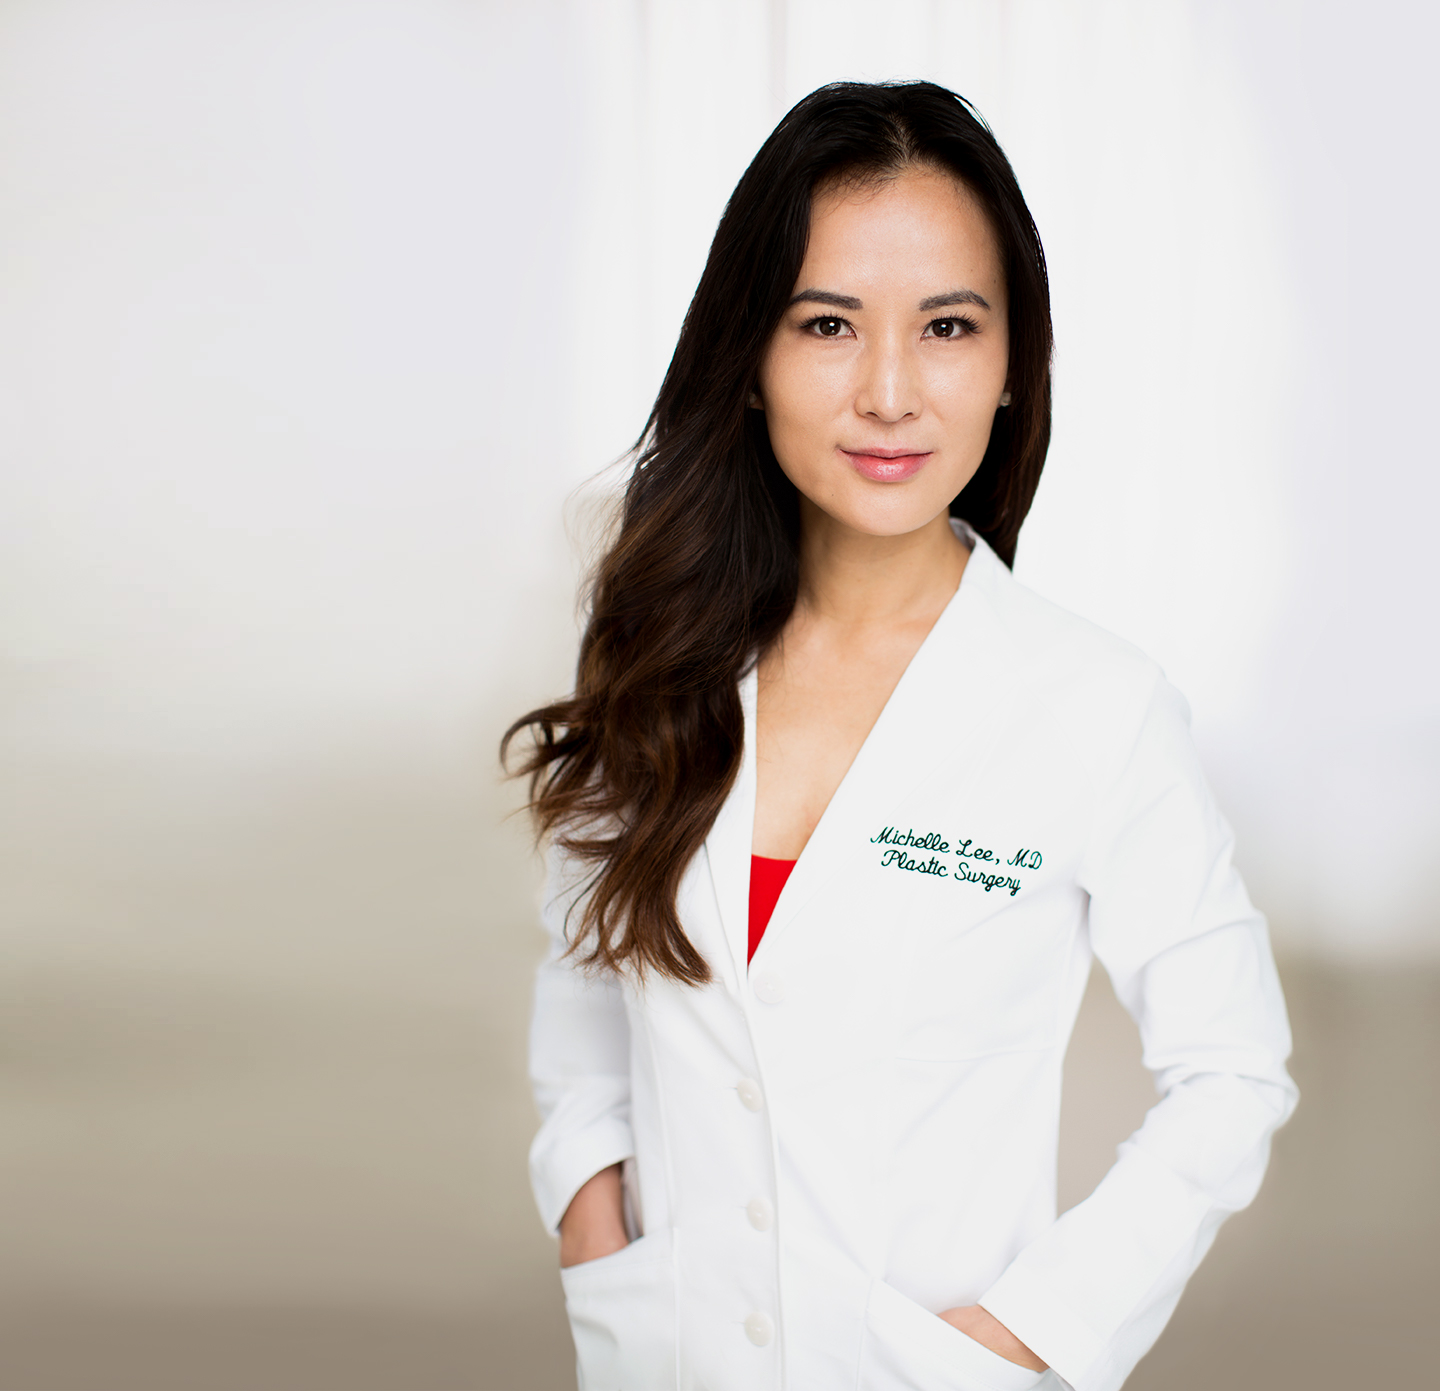 Beverly Hills plastic surgeon, Dr. Michelle Lee